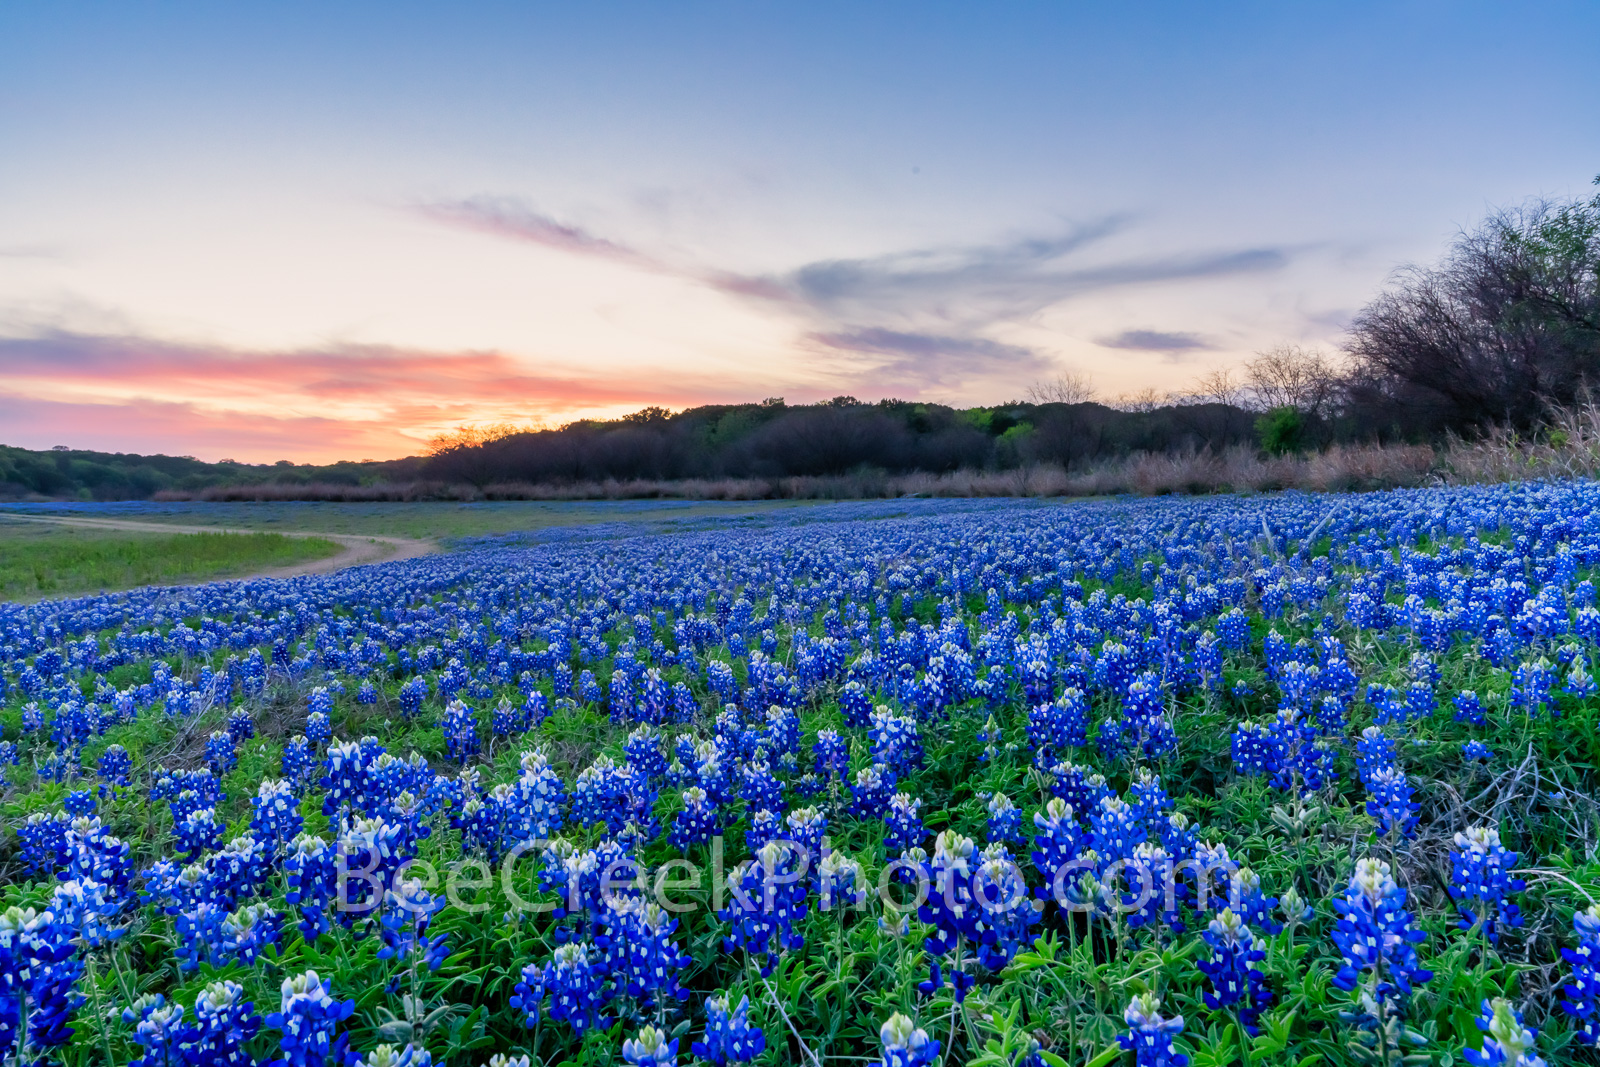 Sunset Over the Park Bluebonnets  - Another capture of the field of bluebonnets after sunset and brought up these nice colors...